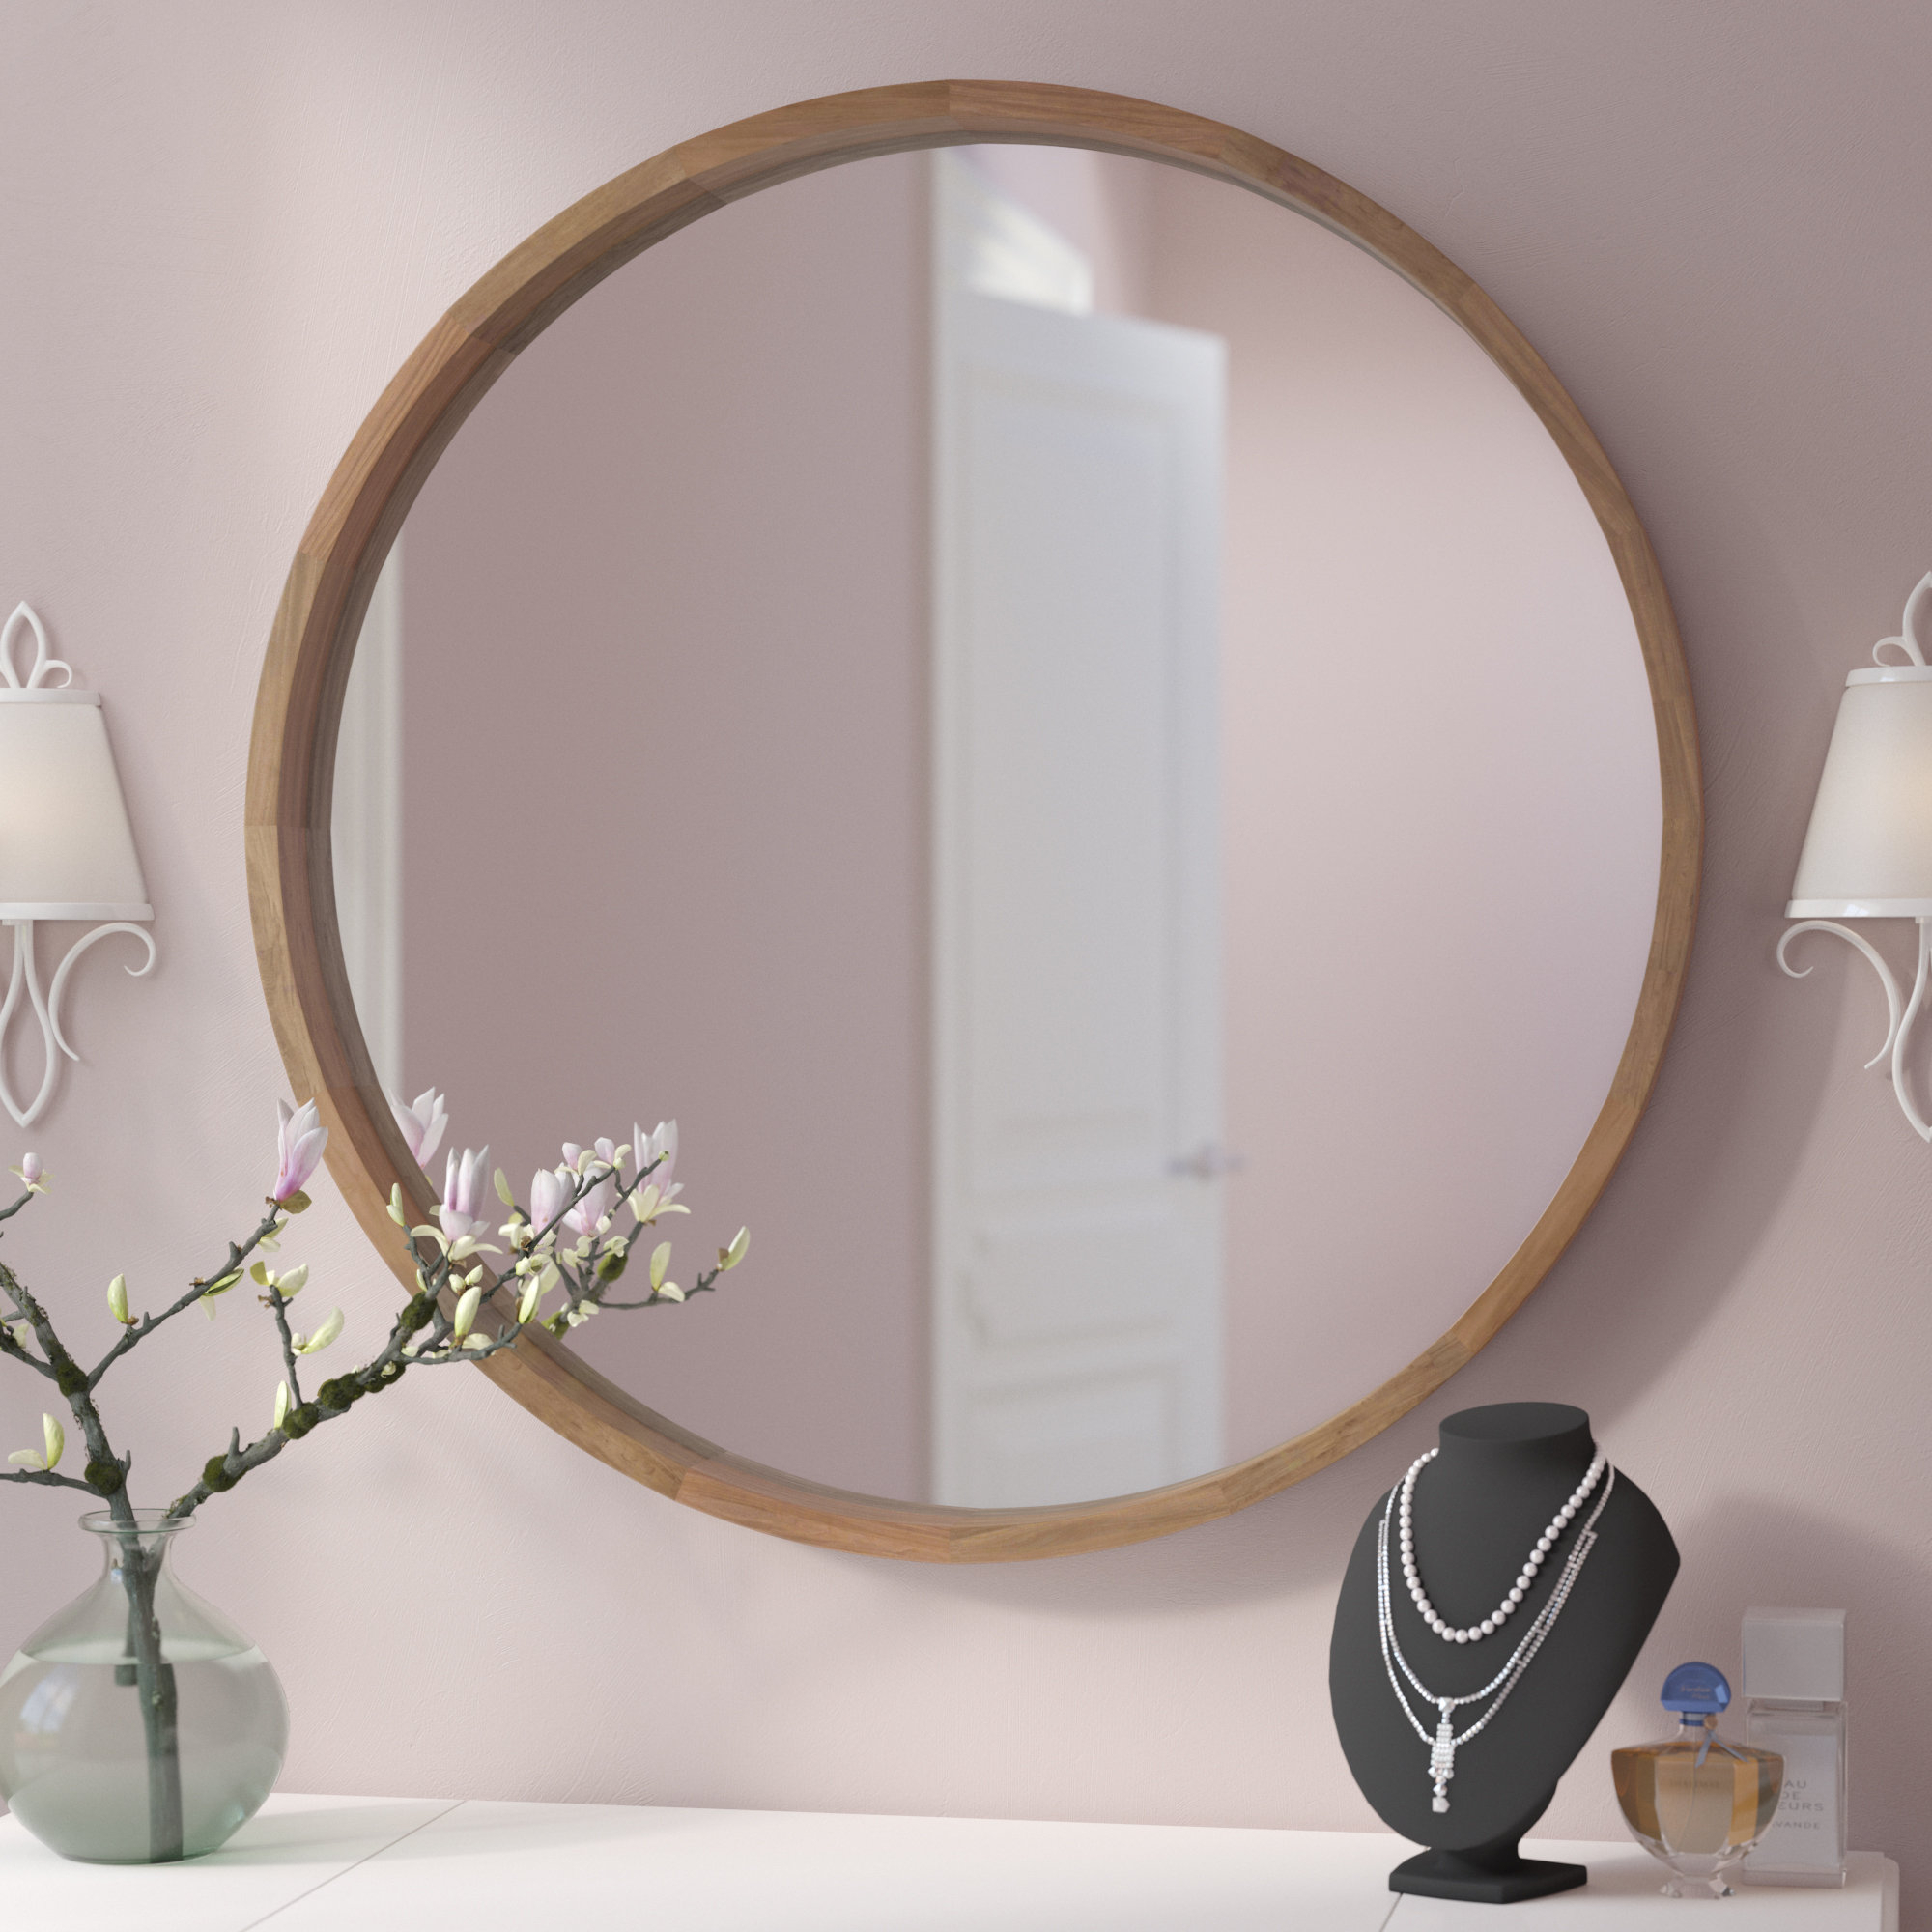 Loftis Modern & Contemporary Accent Wall Mirror Pertaining To Matthias Round Accent Mirrors (Image 8 of 20)